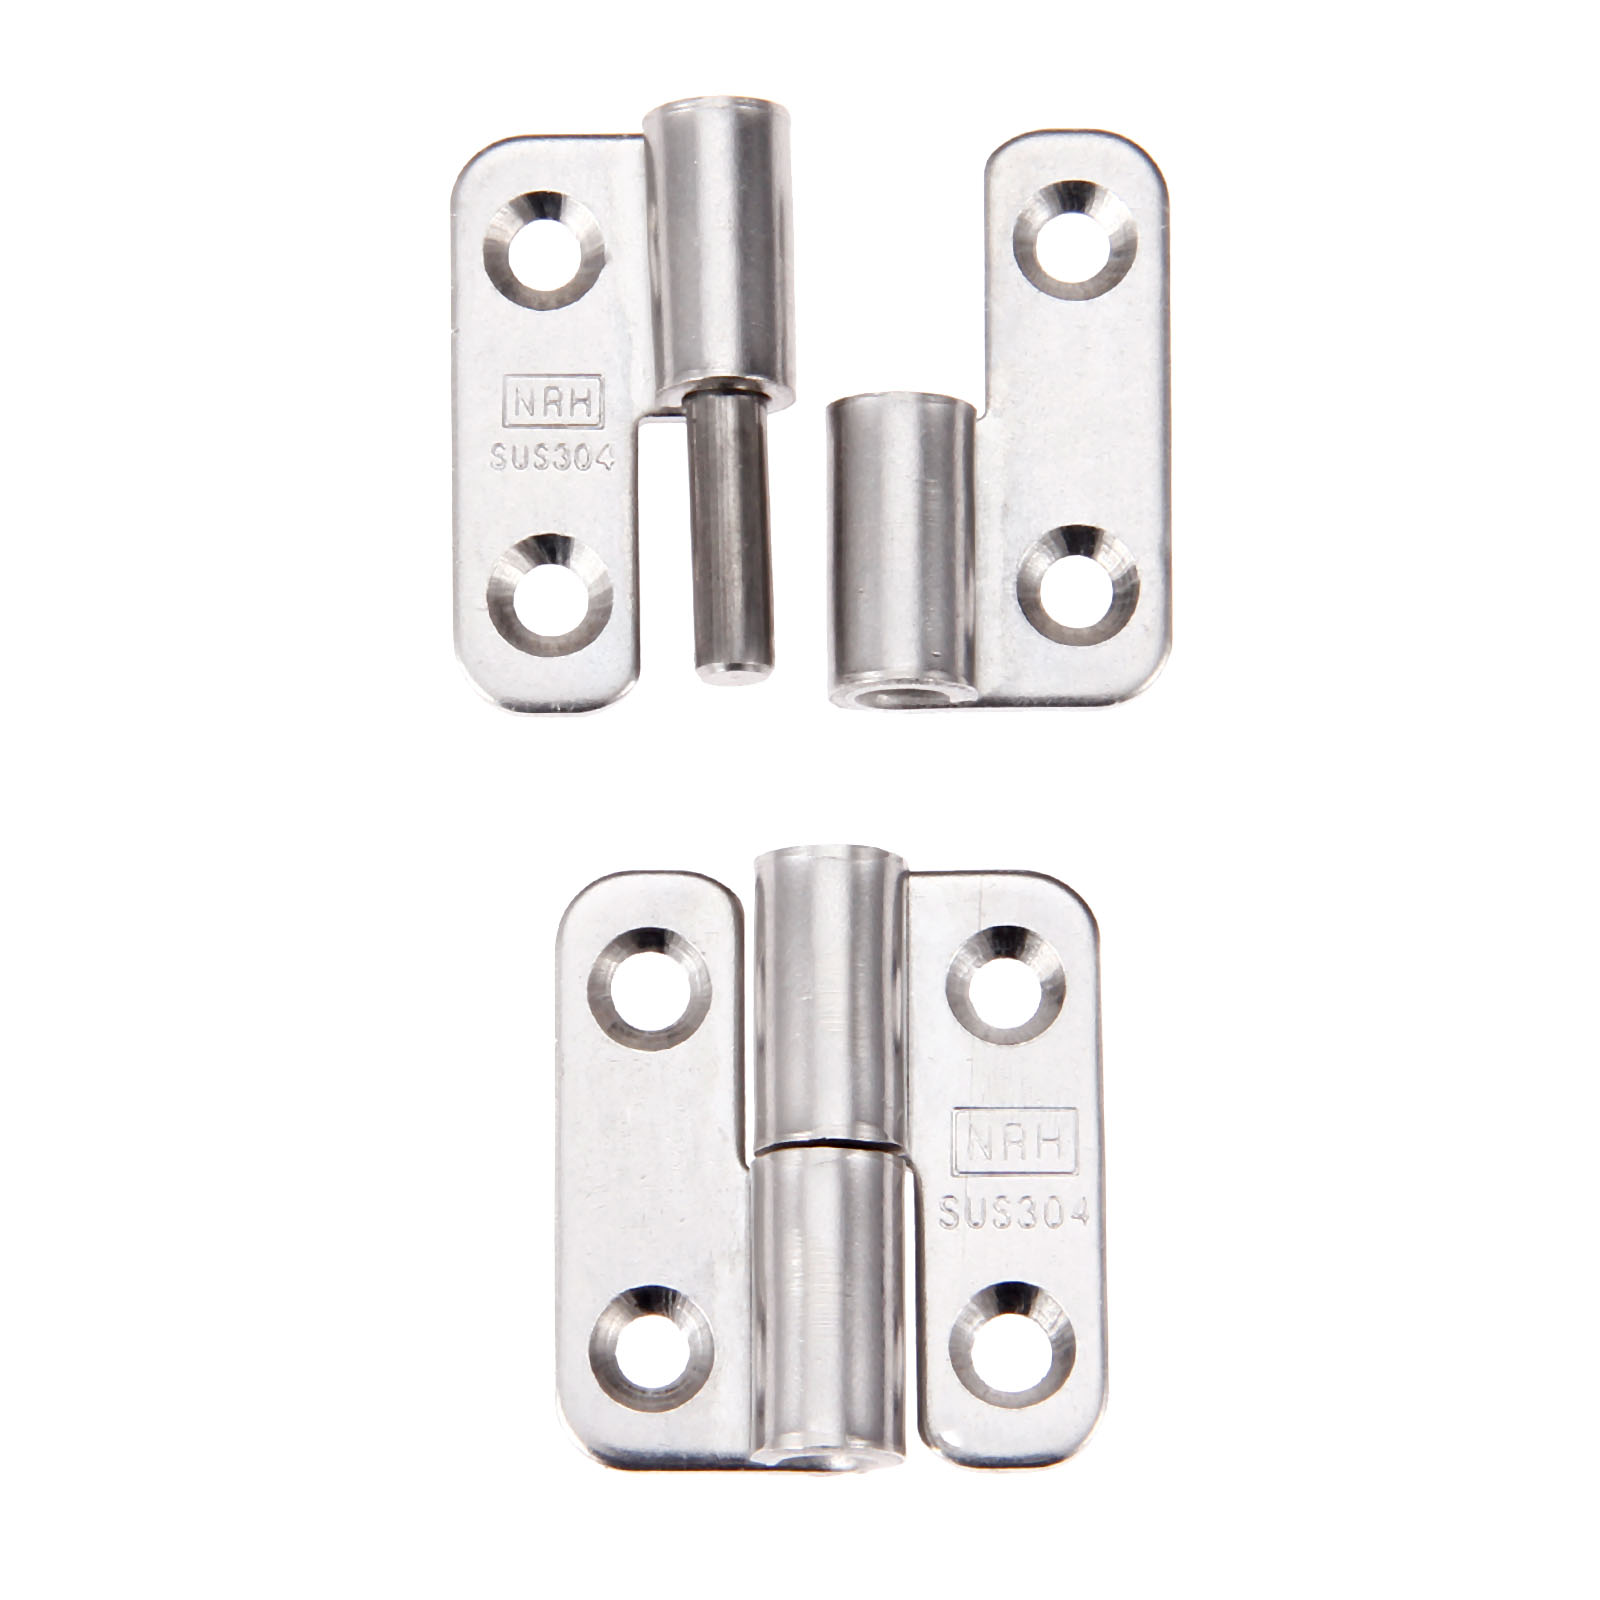 1pc Stainless Steel Electrical Cabinet Boxes Removable Hinges Equipment Box Metal Switchgear Toolbox Cabinet Doors Hinge 37 34mm Cabinet Hinges Aliexpress